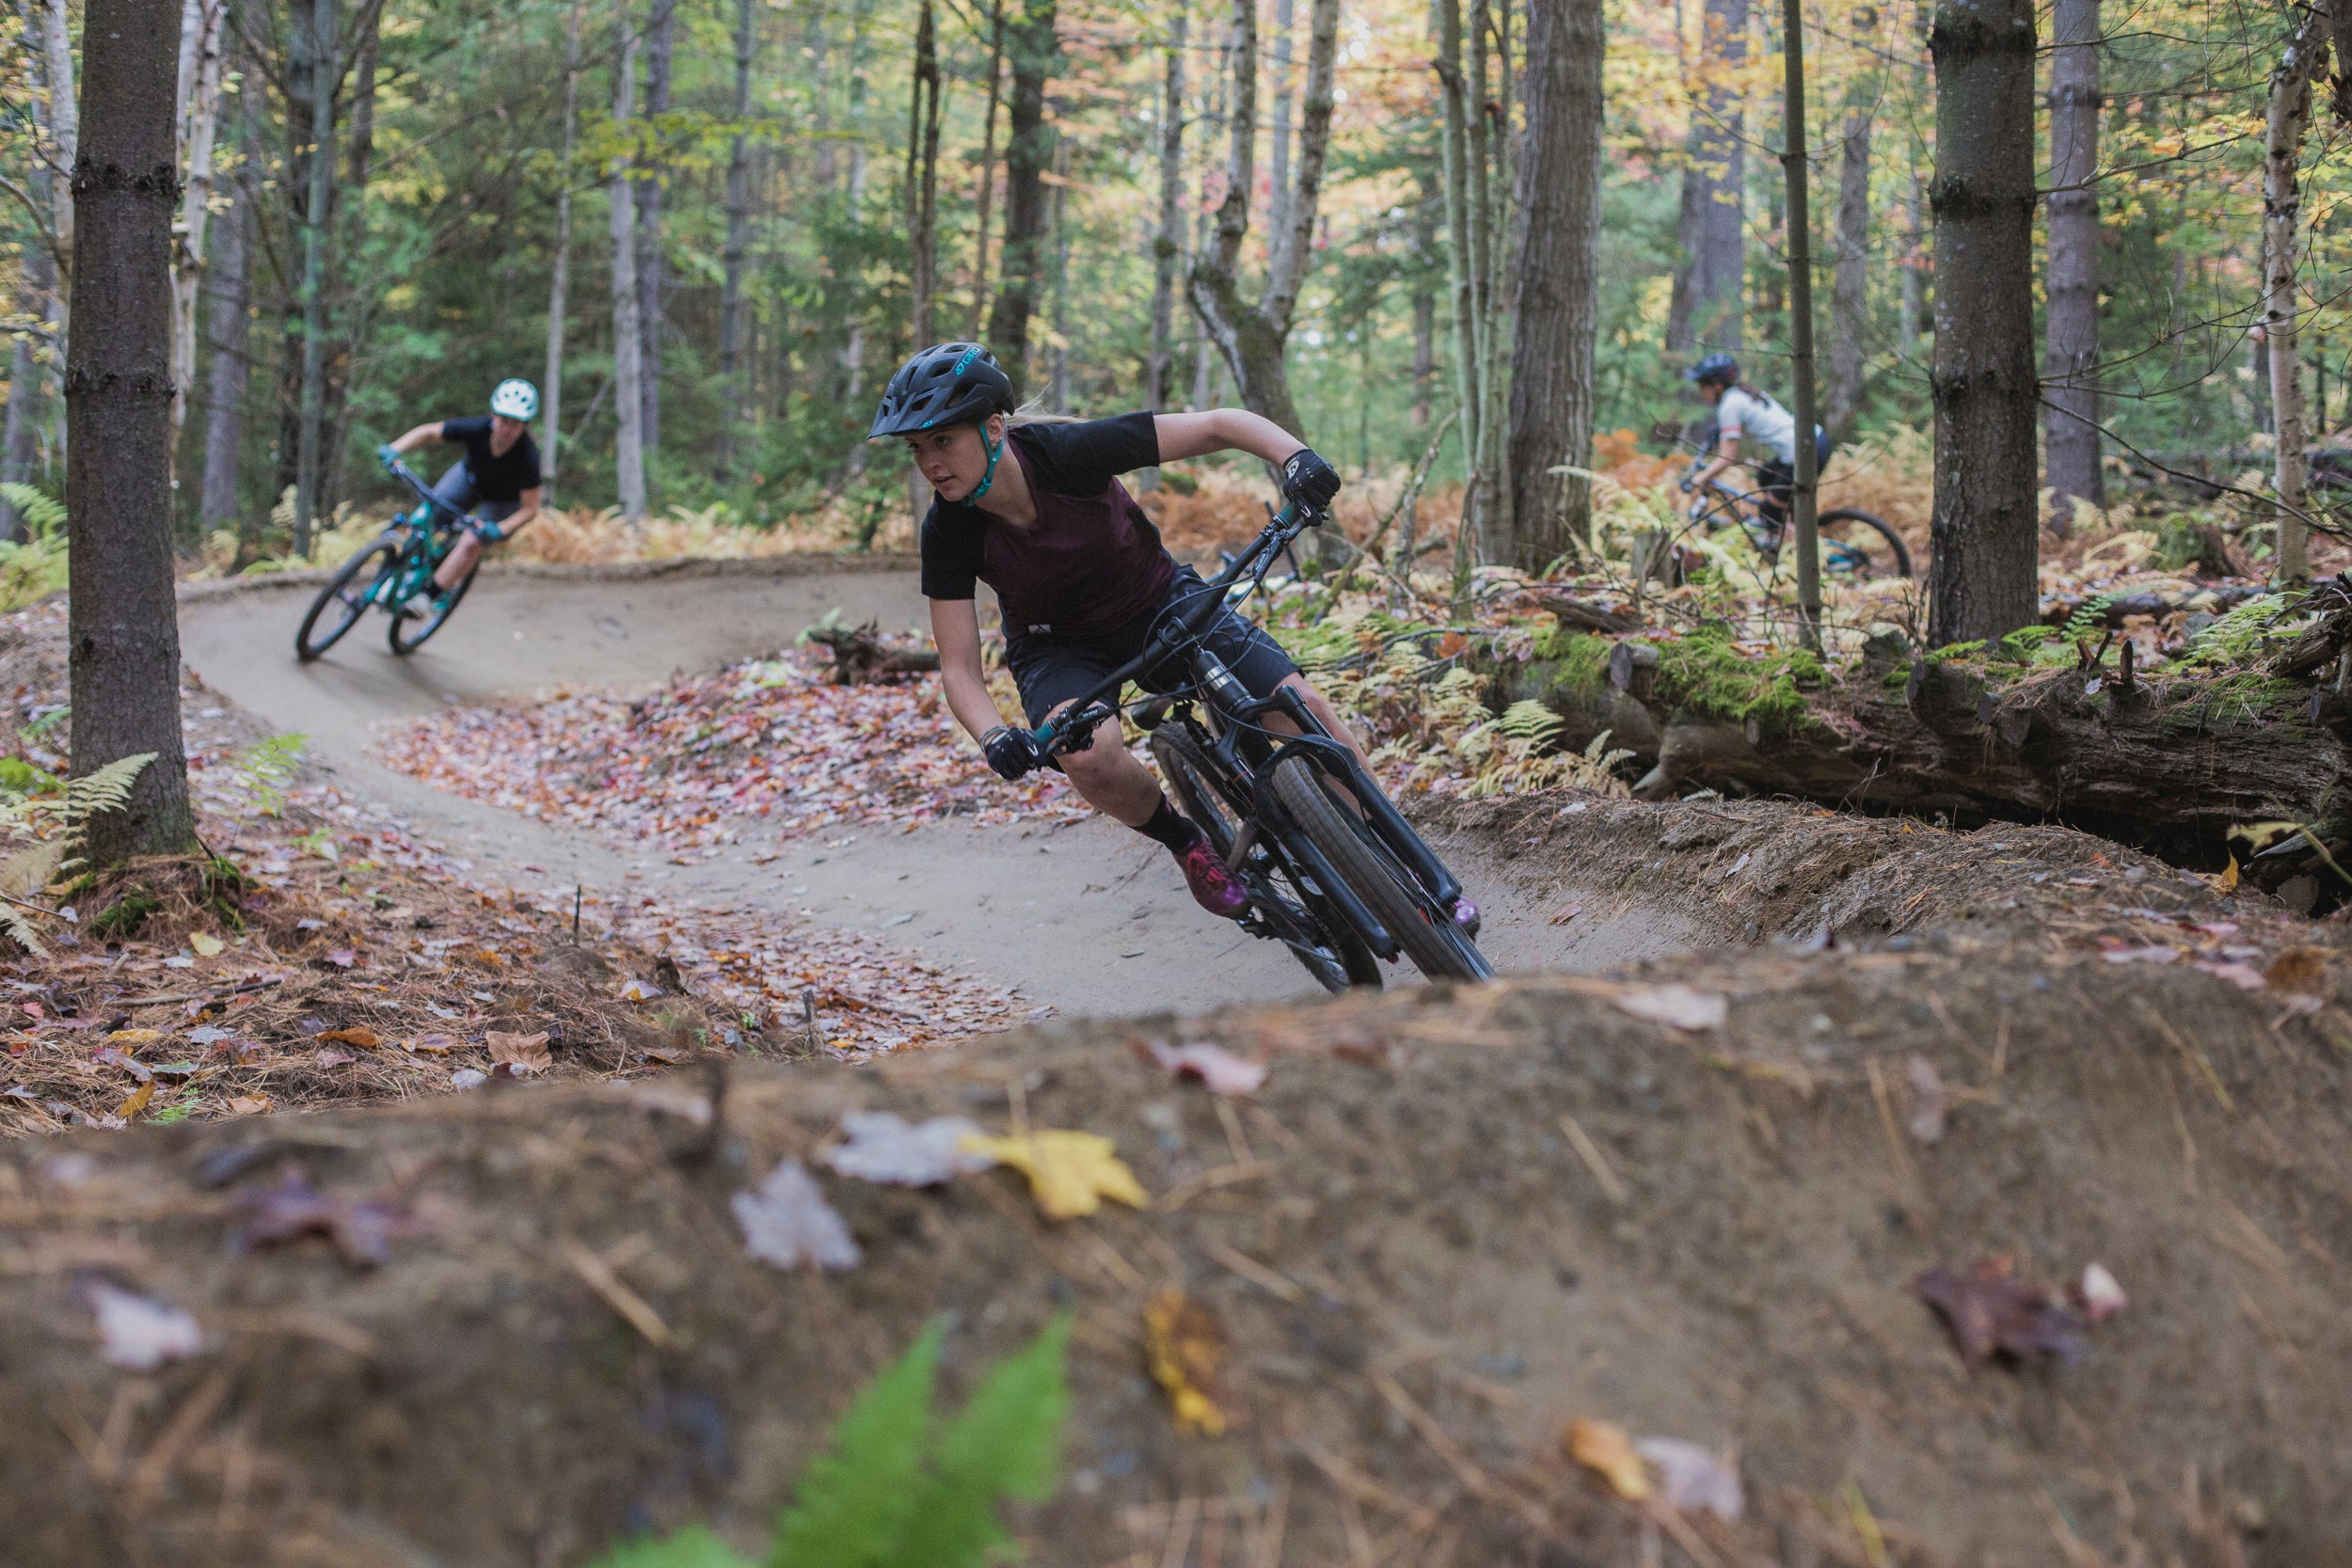 Basic Tips for Learning How to Ride a Berm - Image 3